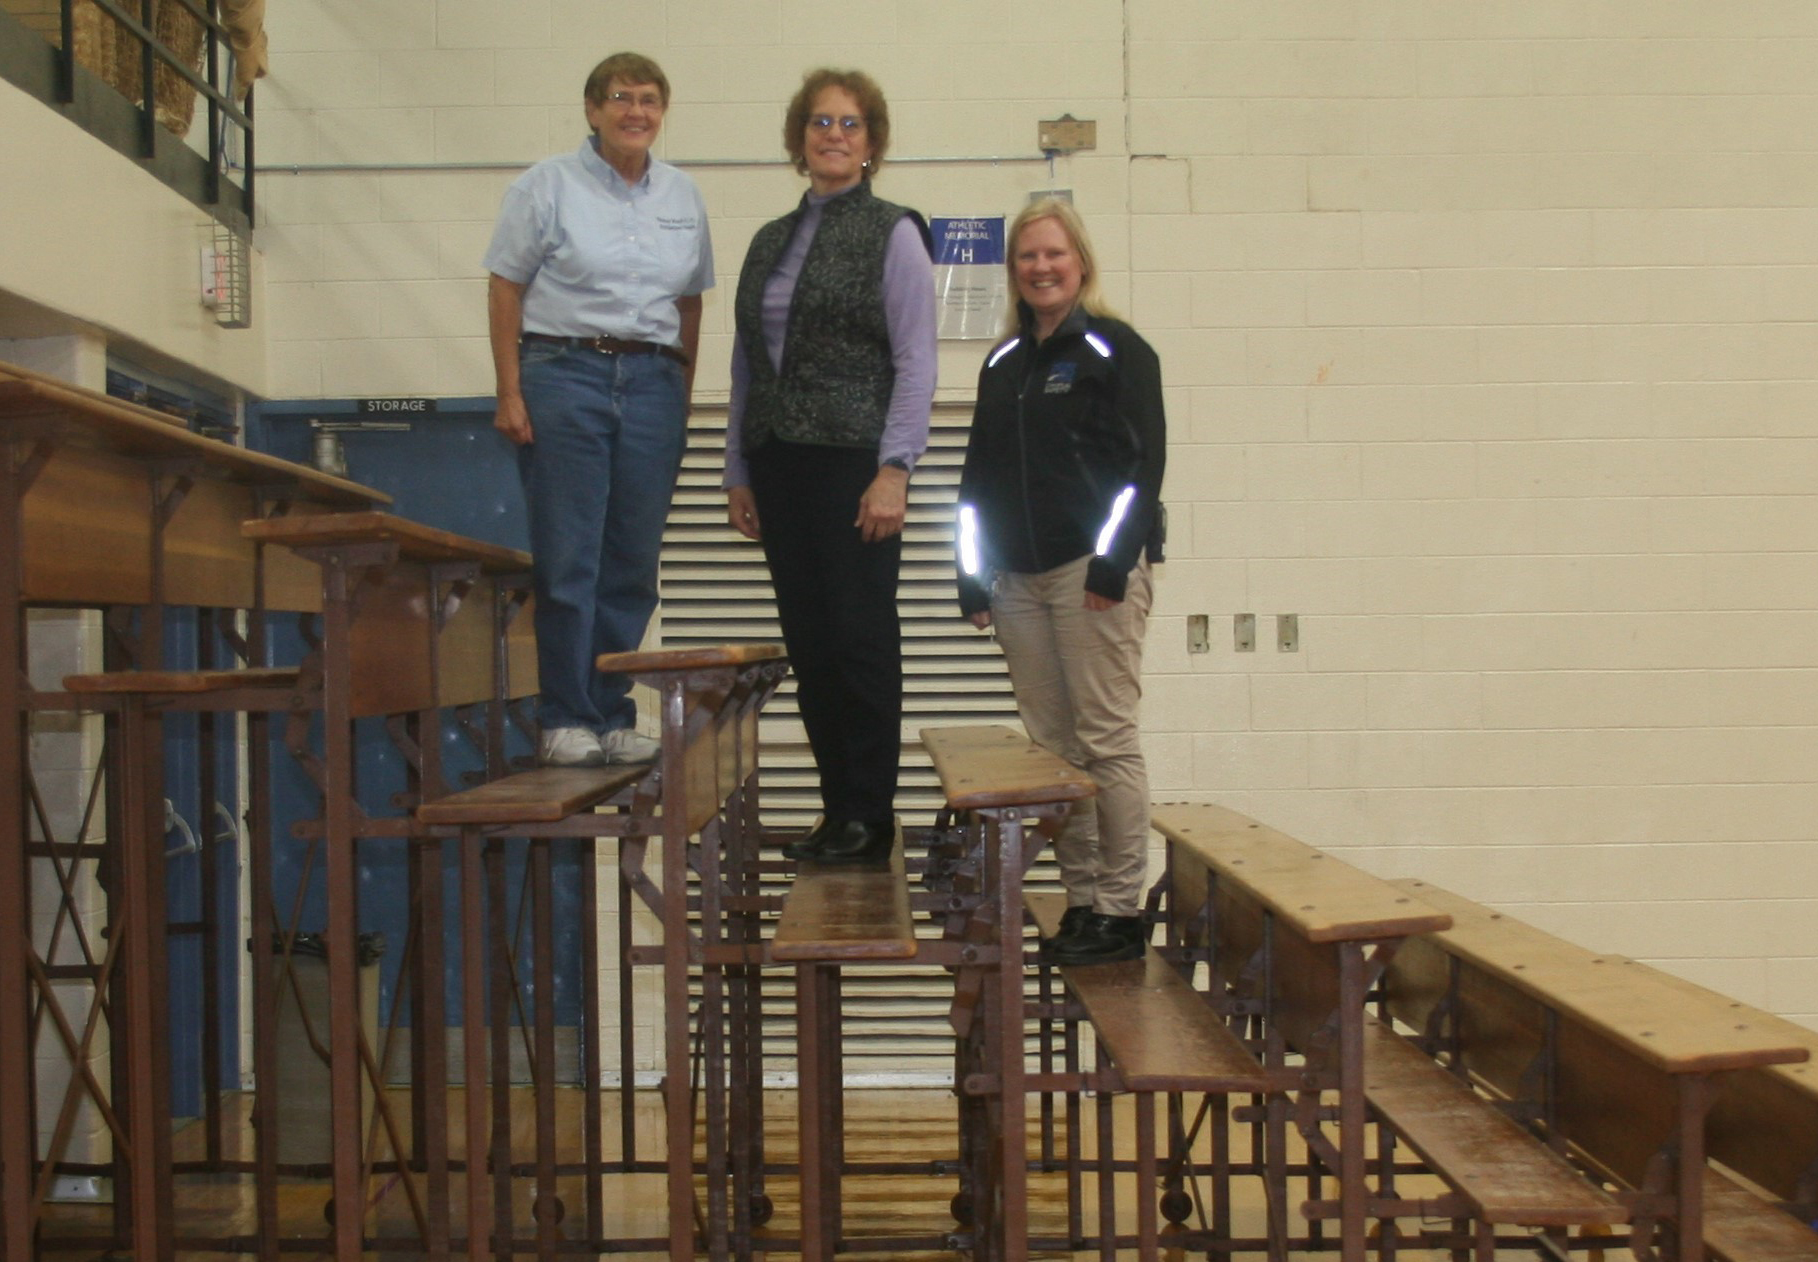 Bryden, Perkovich, and Schoen standing on the old bleachers